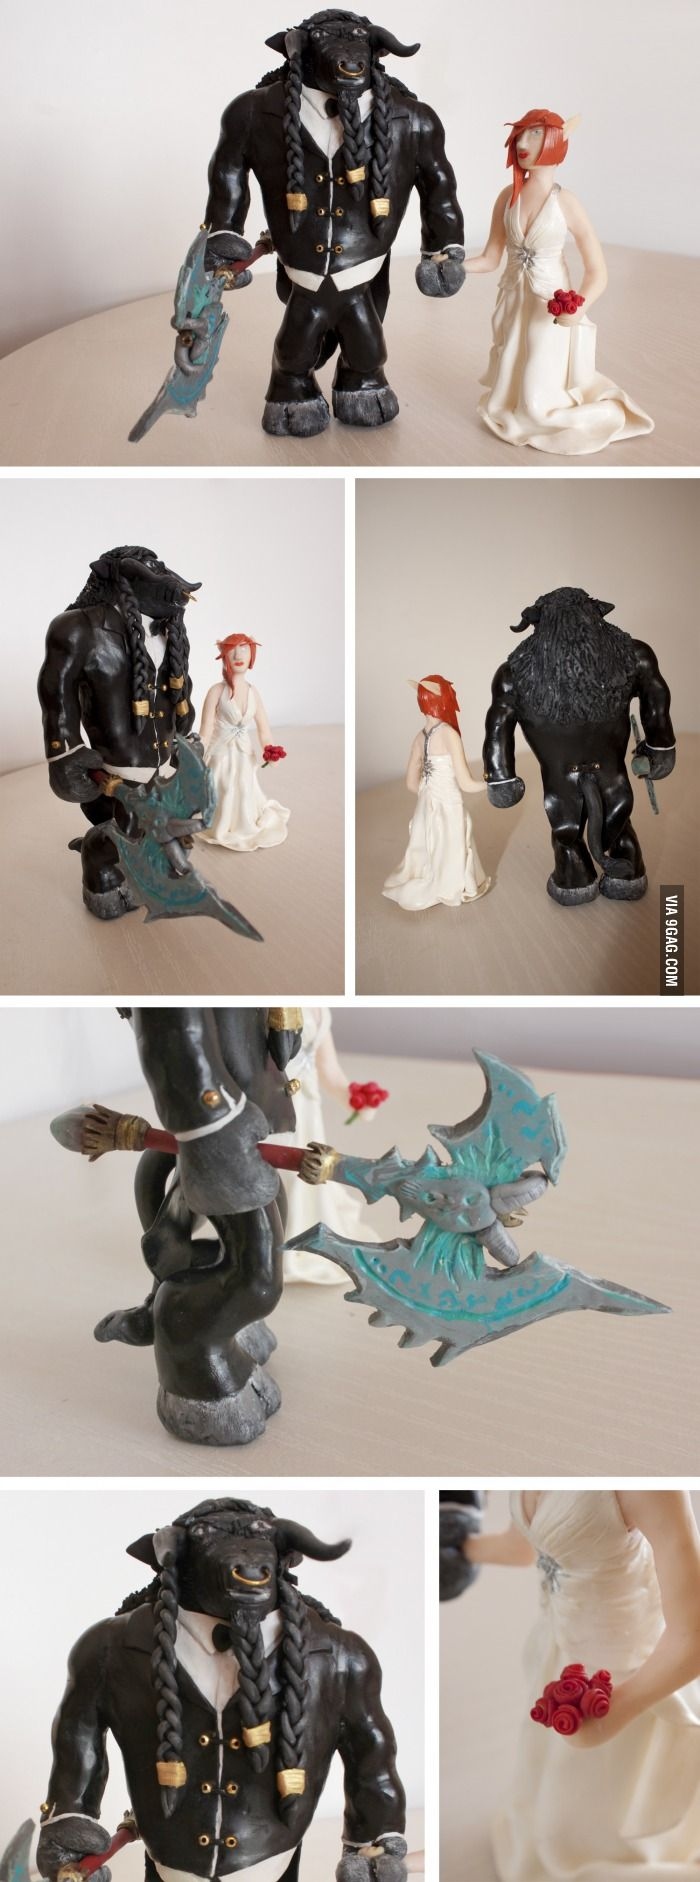 I made this wedding cake toppers for my friends out of polymer clay. They play WoW - tauren warrior and belf priest :)